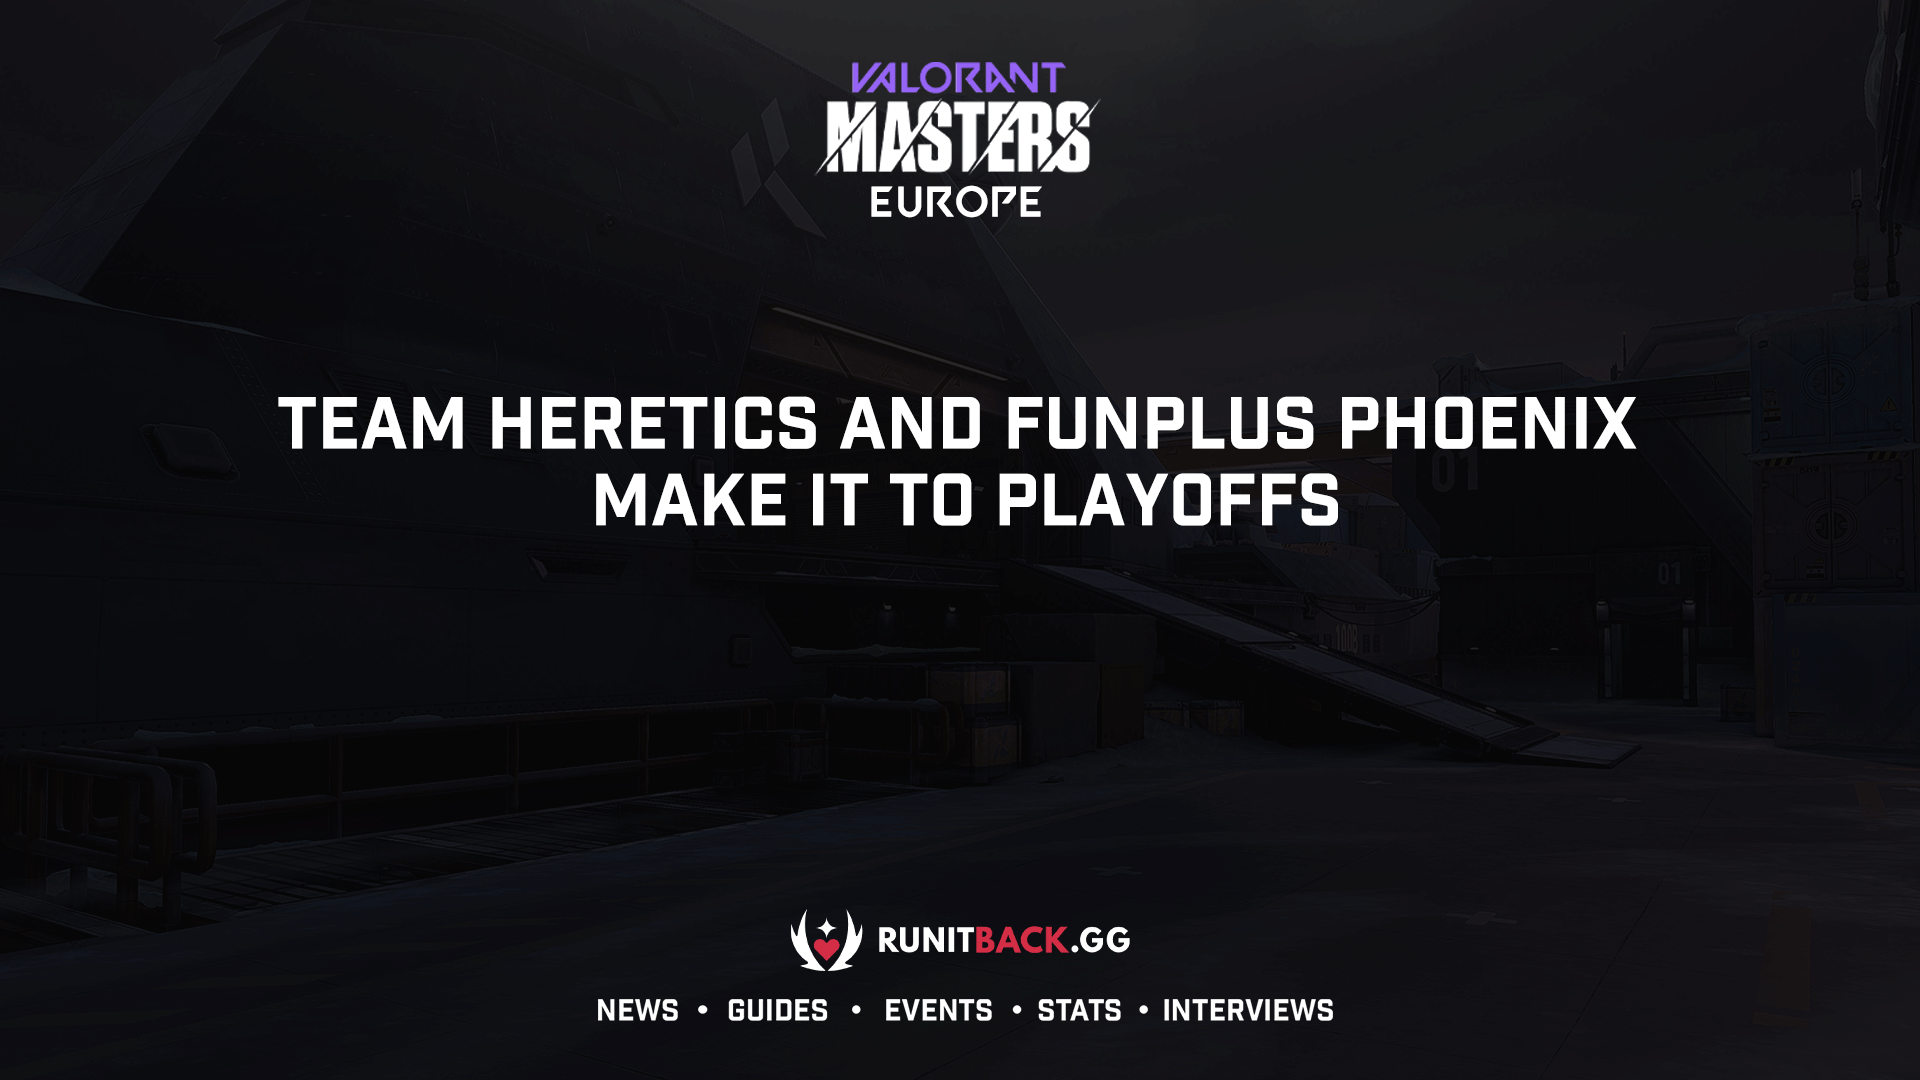 VCT Masters Europe: Team Heretics and FunPlus Phoenix make it to playoffs